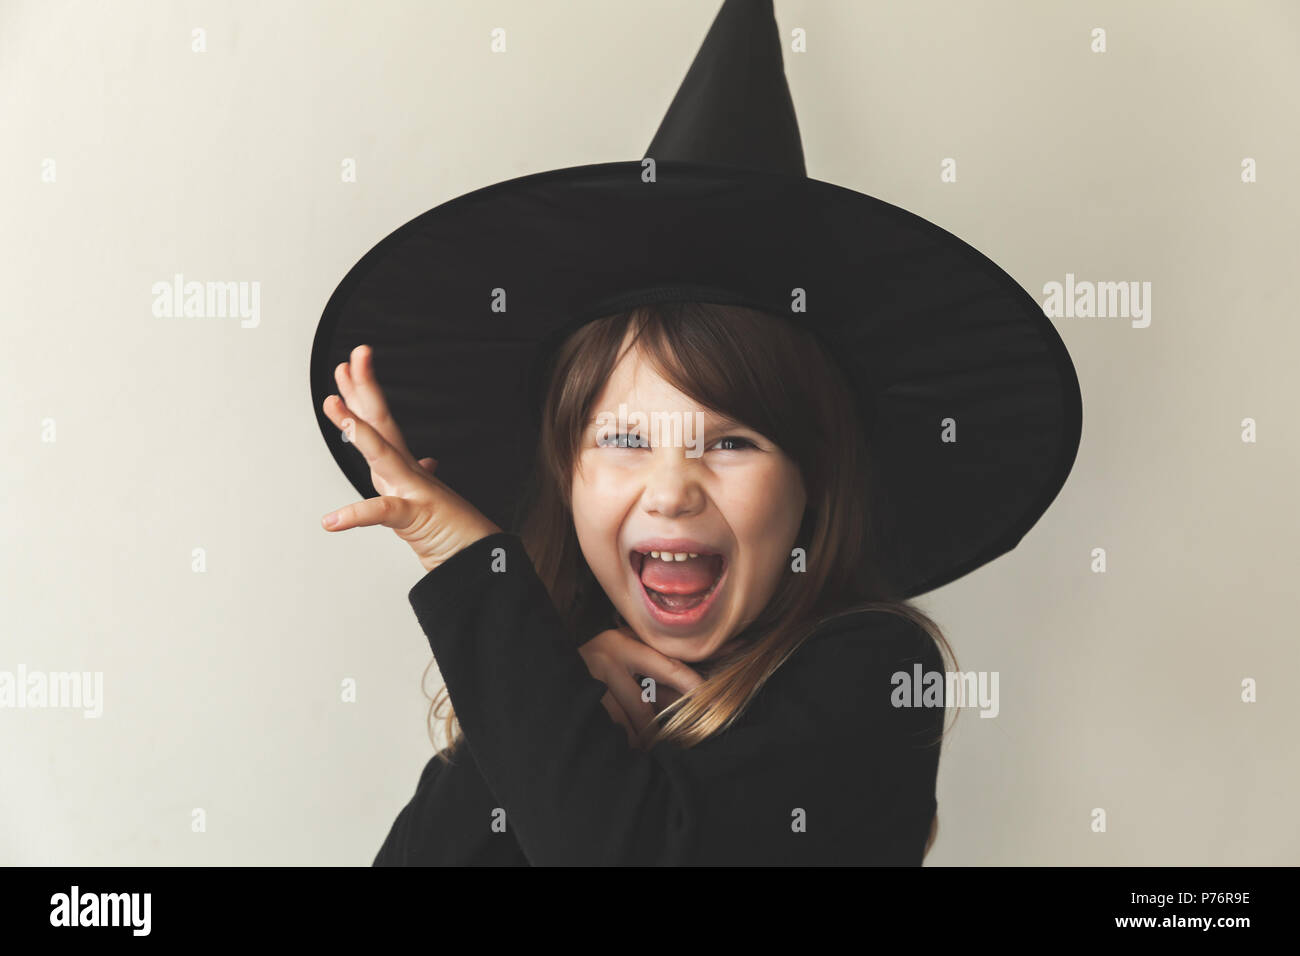 Little grimacing blond European girl in black witch costume over white wall, close-up studio portrait - Stock Image